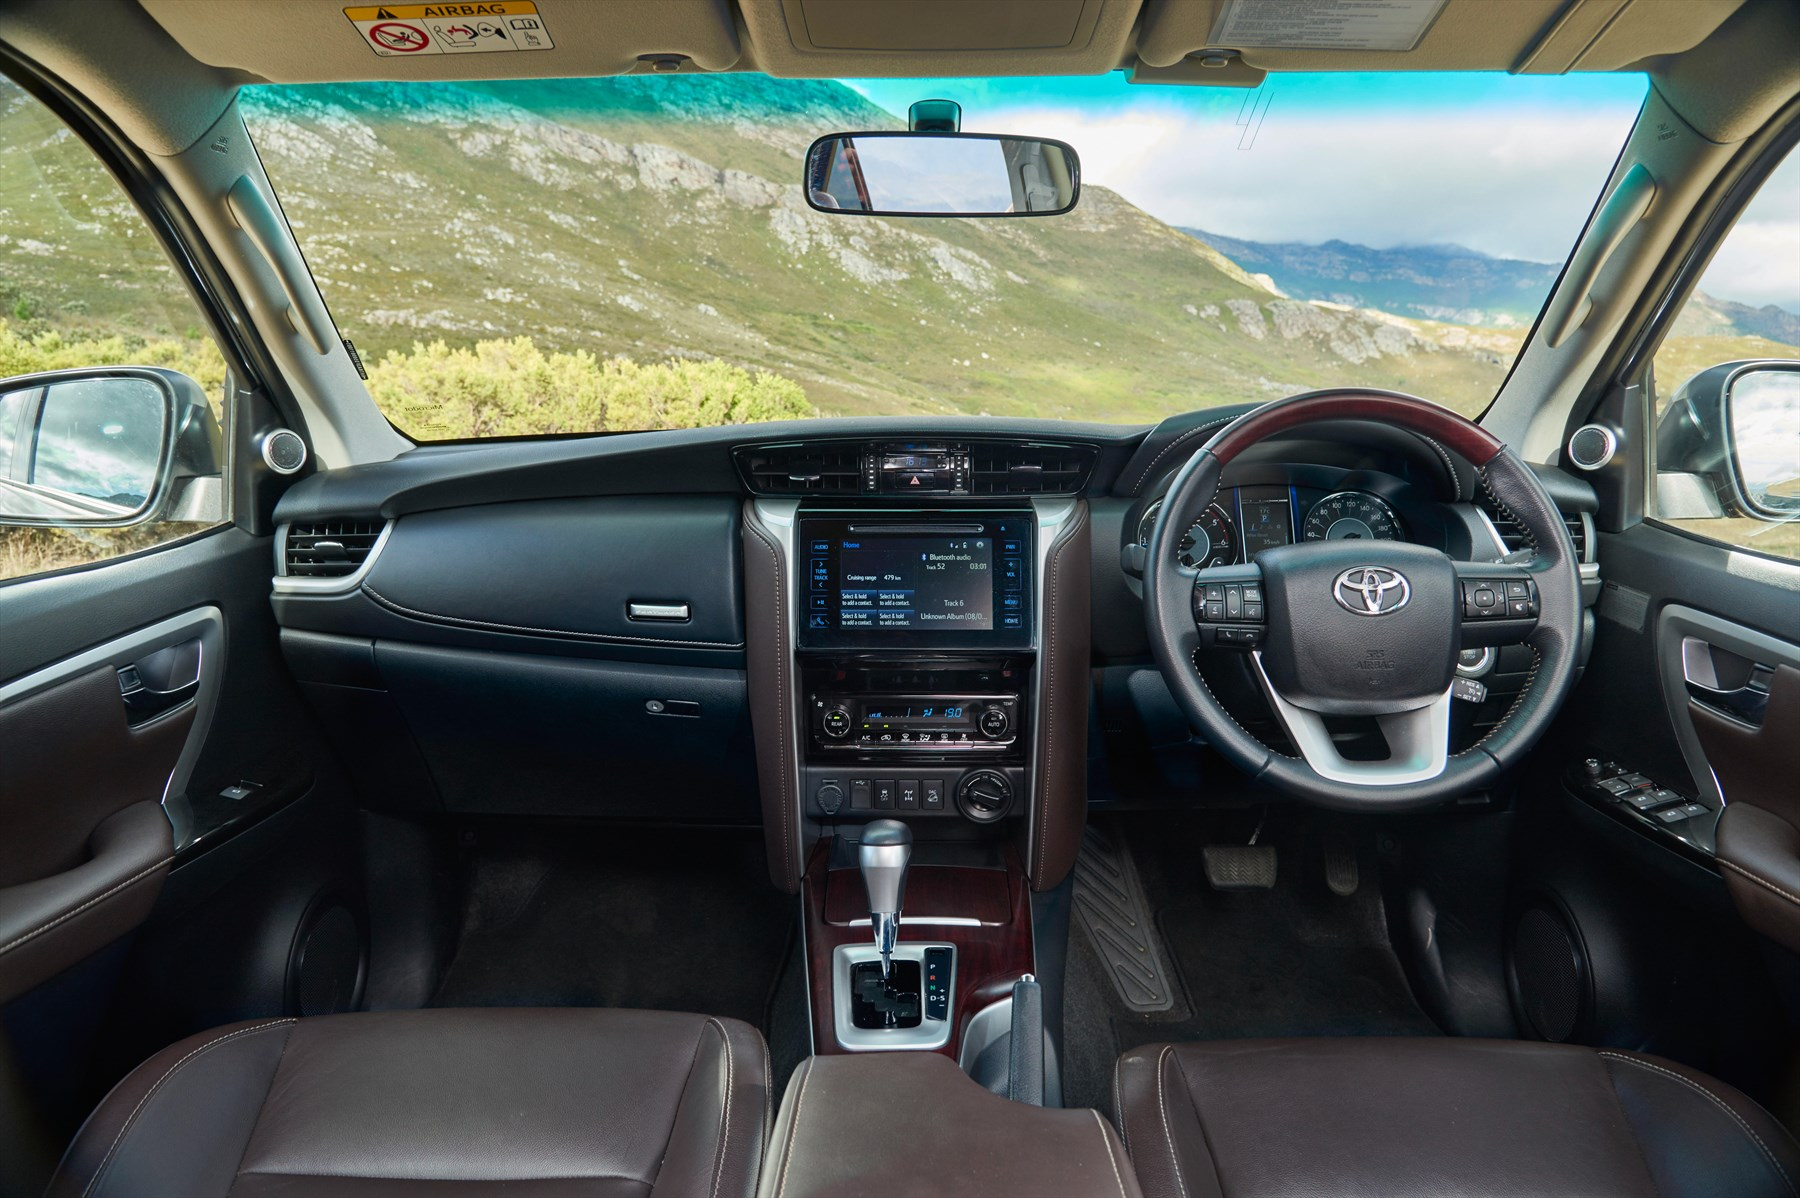 2018 suv with manual transmission